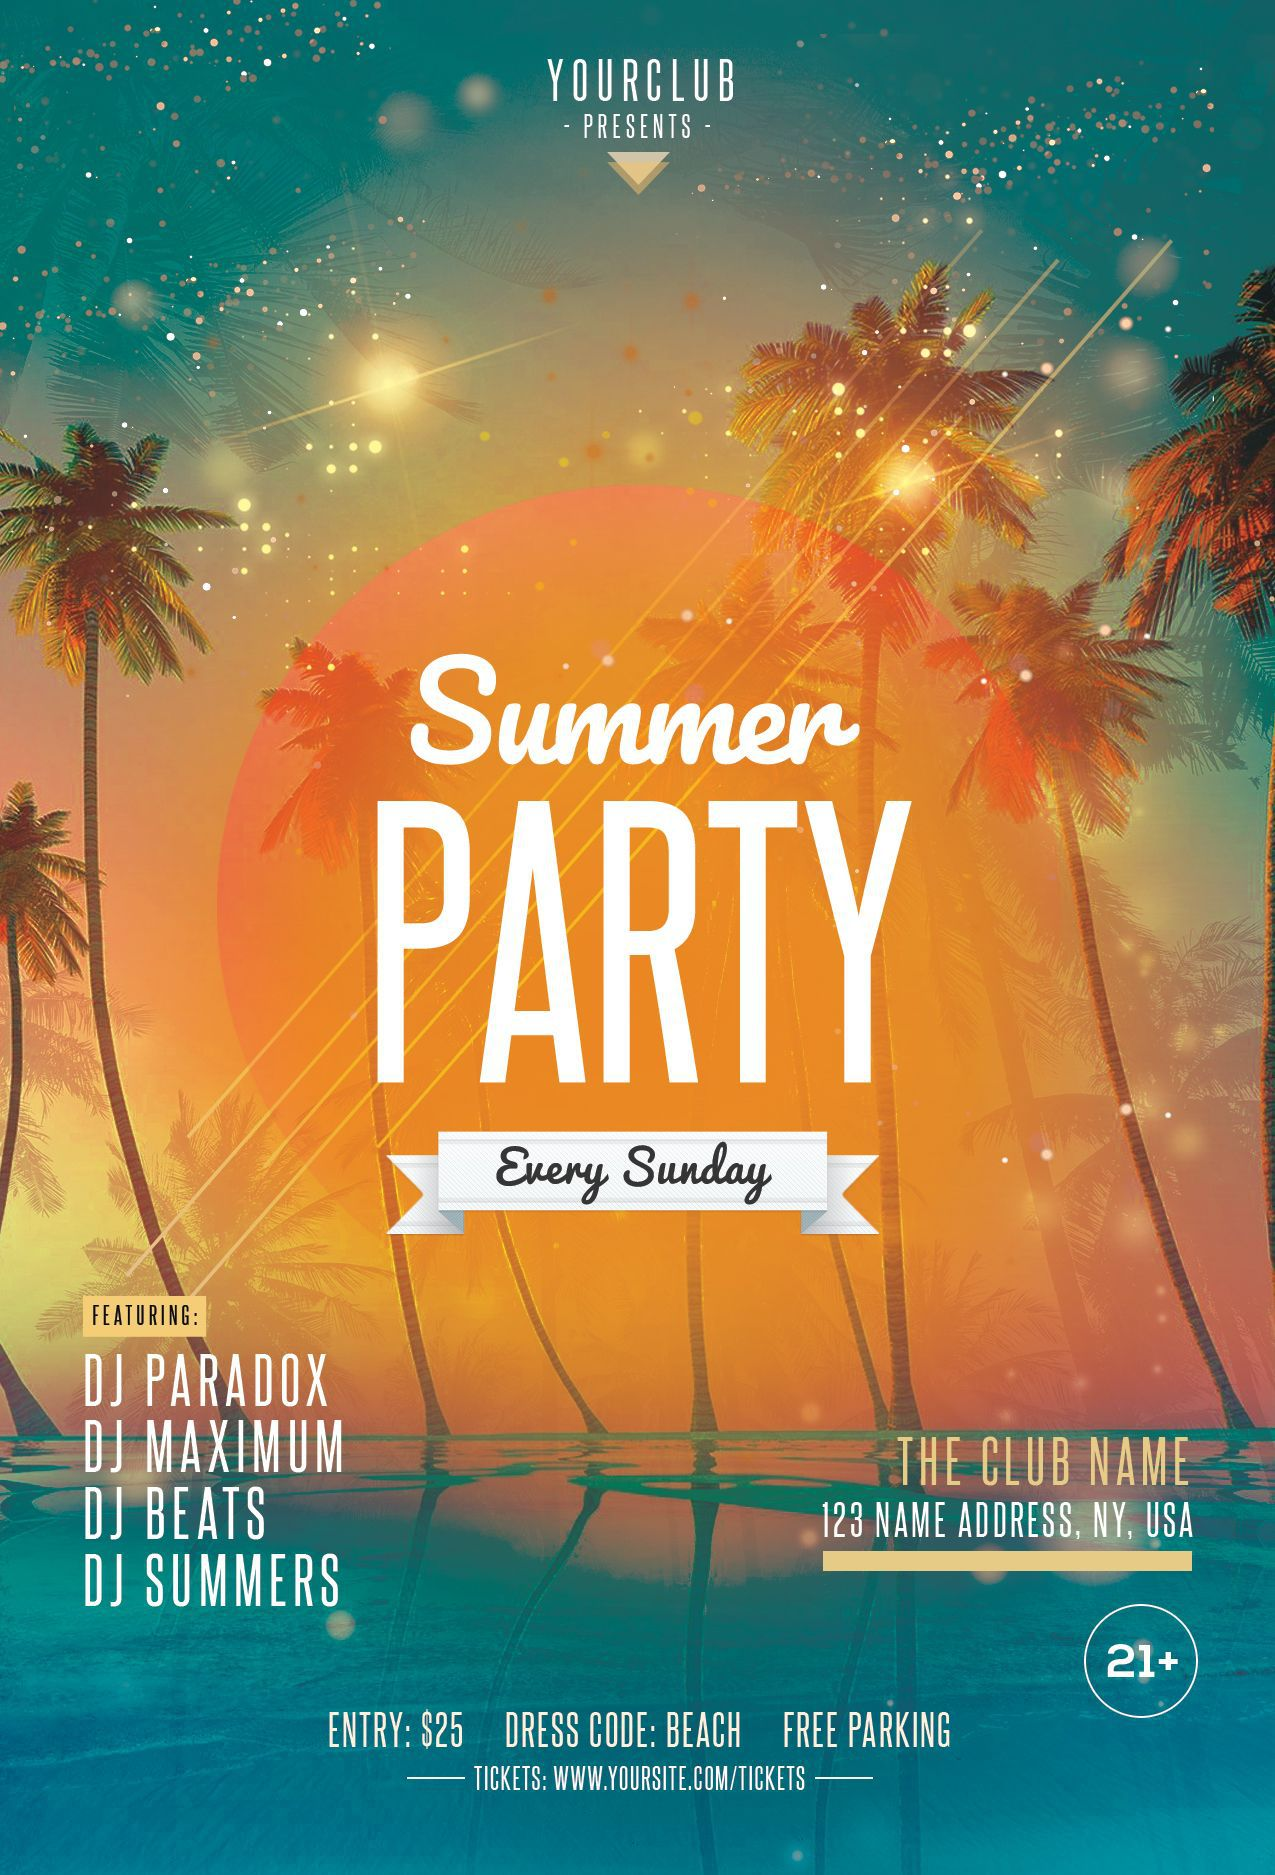 000 Surprising Free Party Flyer Psd Template Download High Resolution  - Neon GlowFull